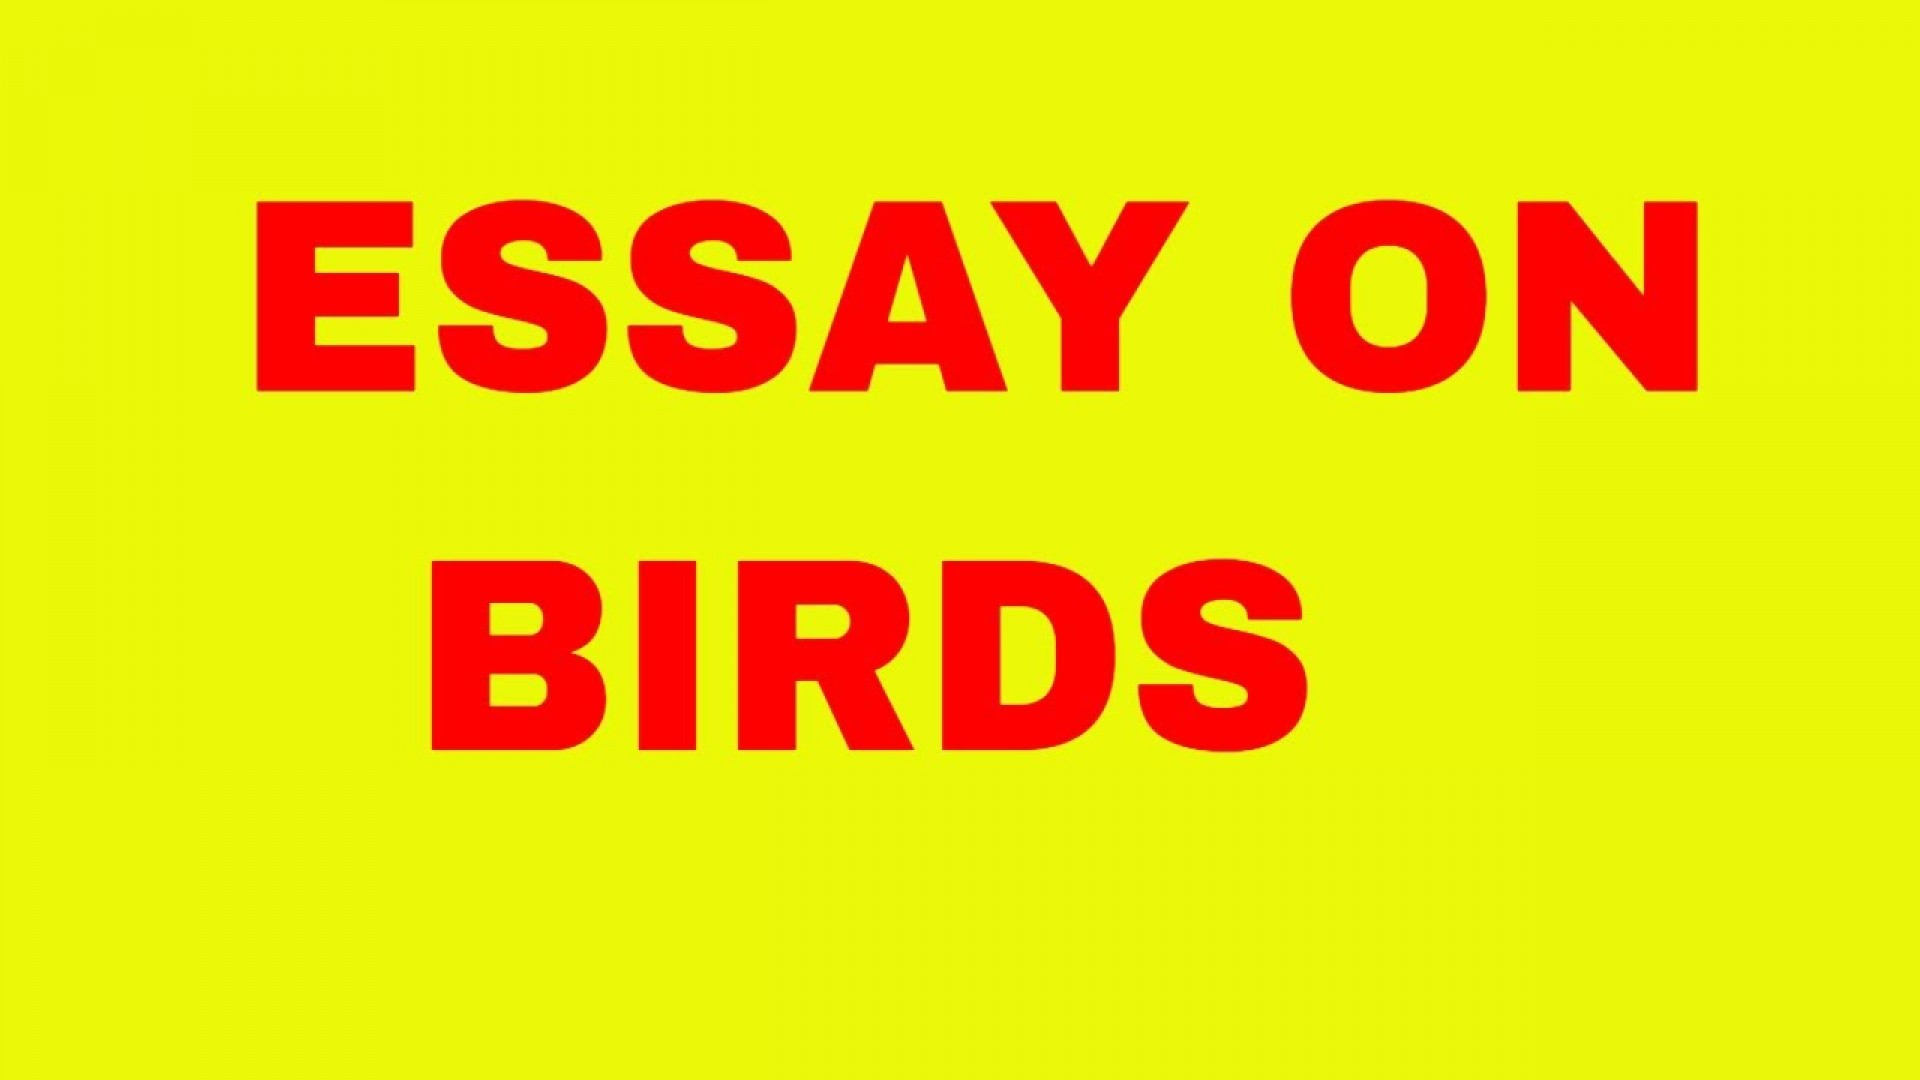 002 Essay On Birds Example Incredible Nest In Telugu Kannada And Animals 1920